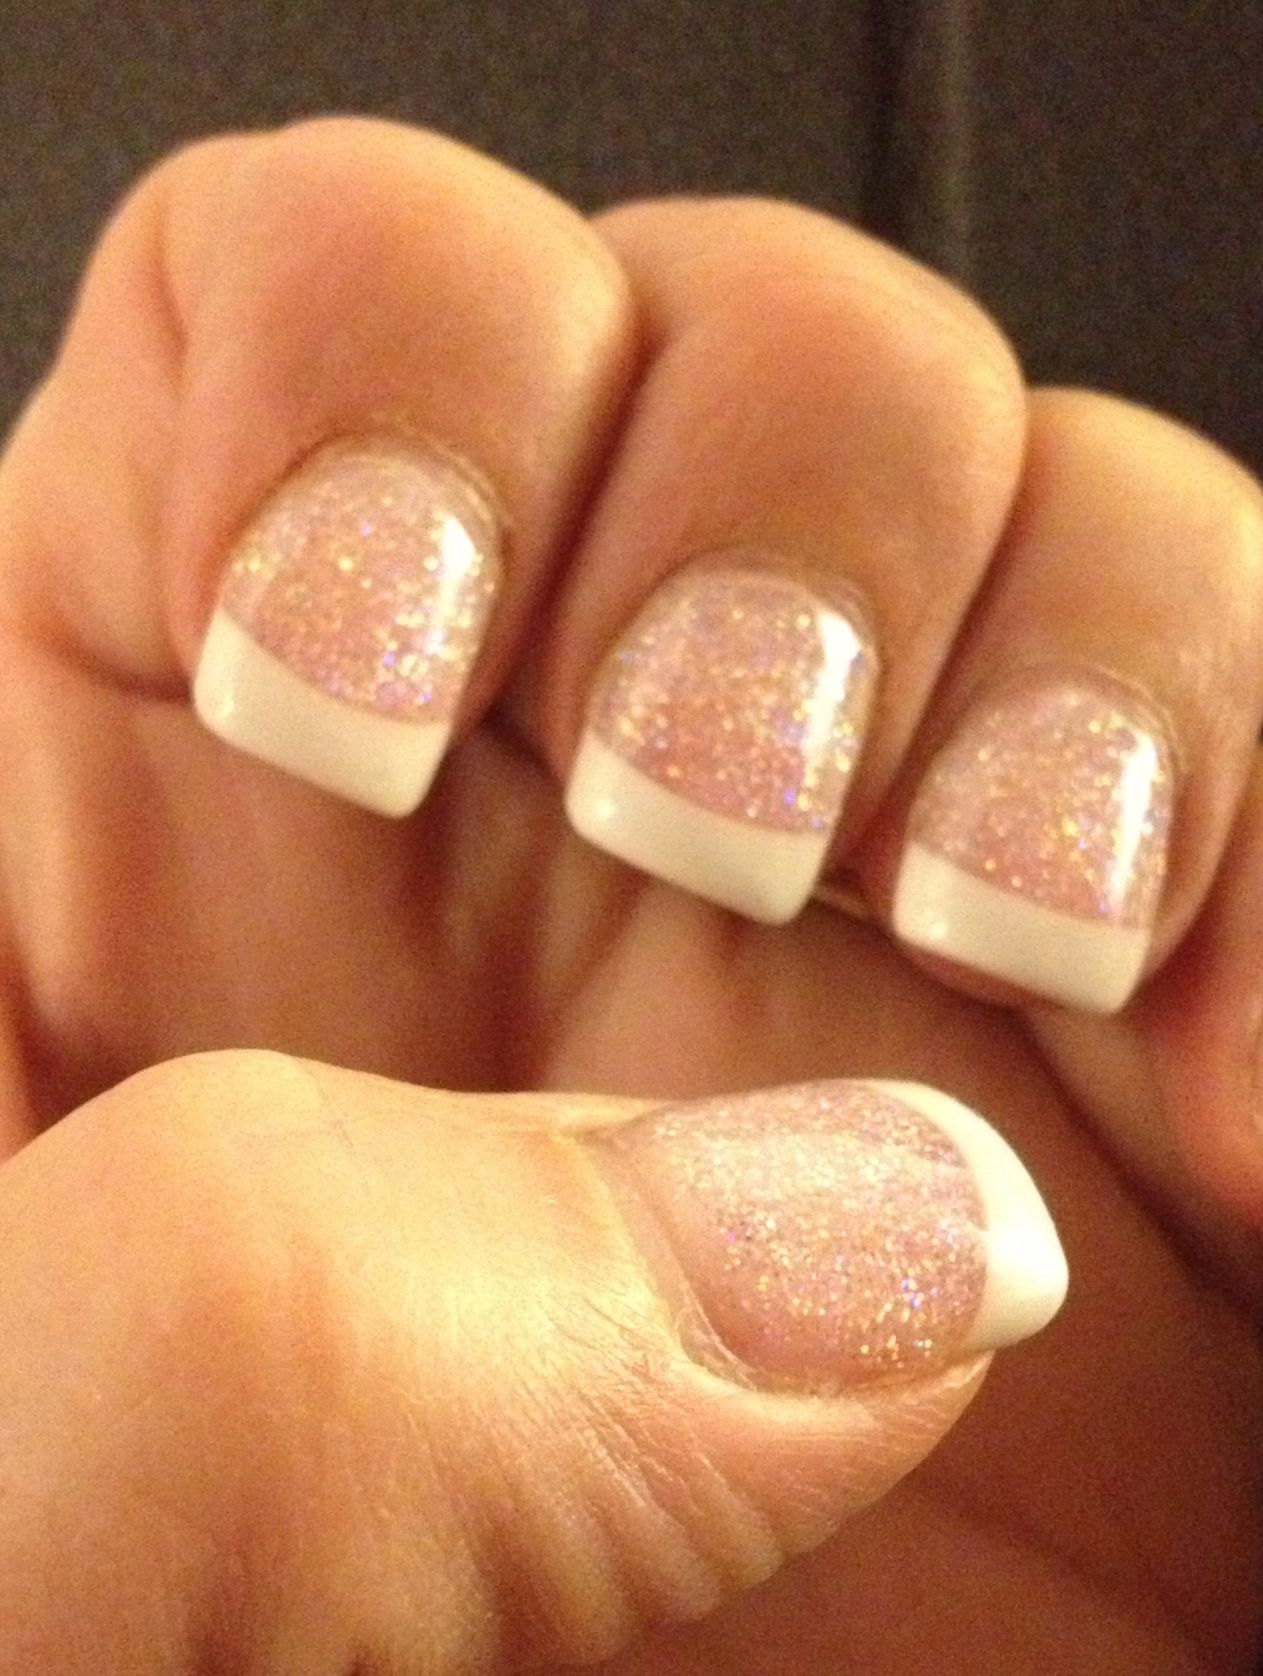 French manicure with glitter gel on the nail and white tips nail